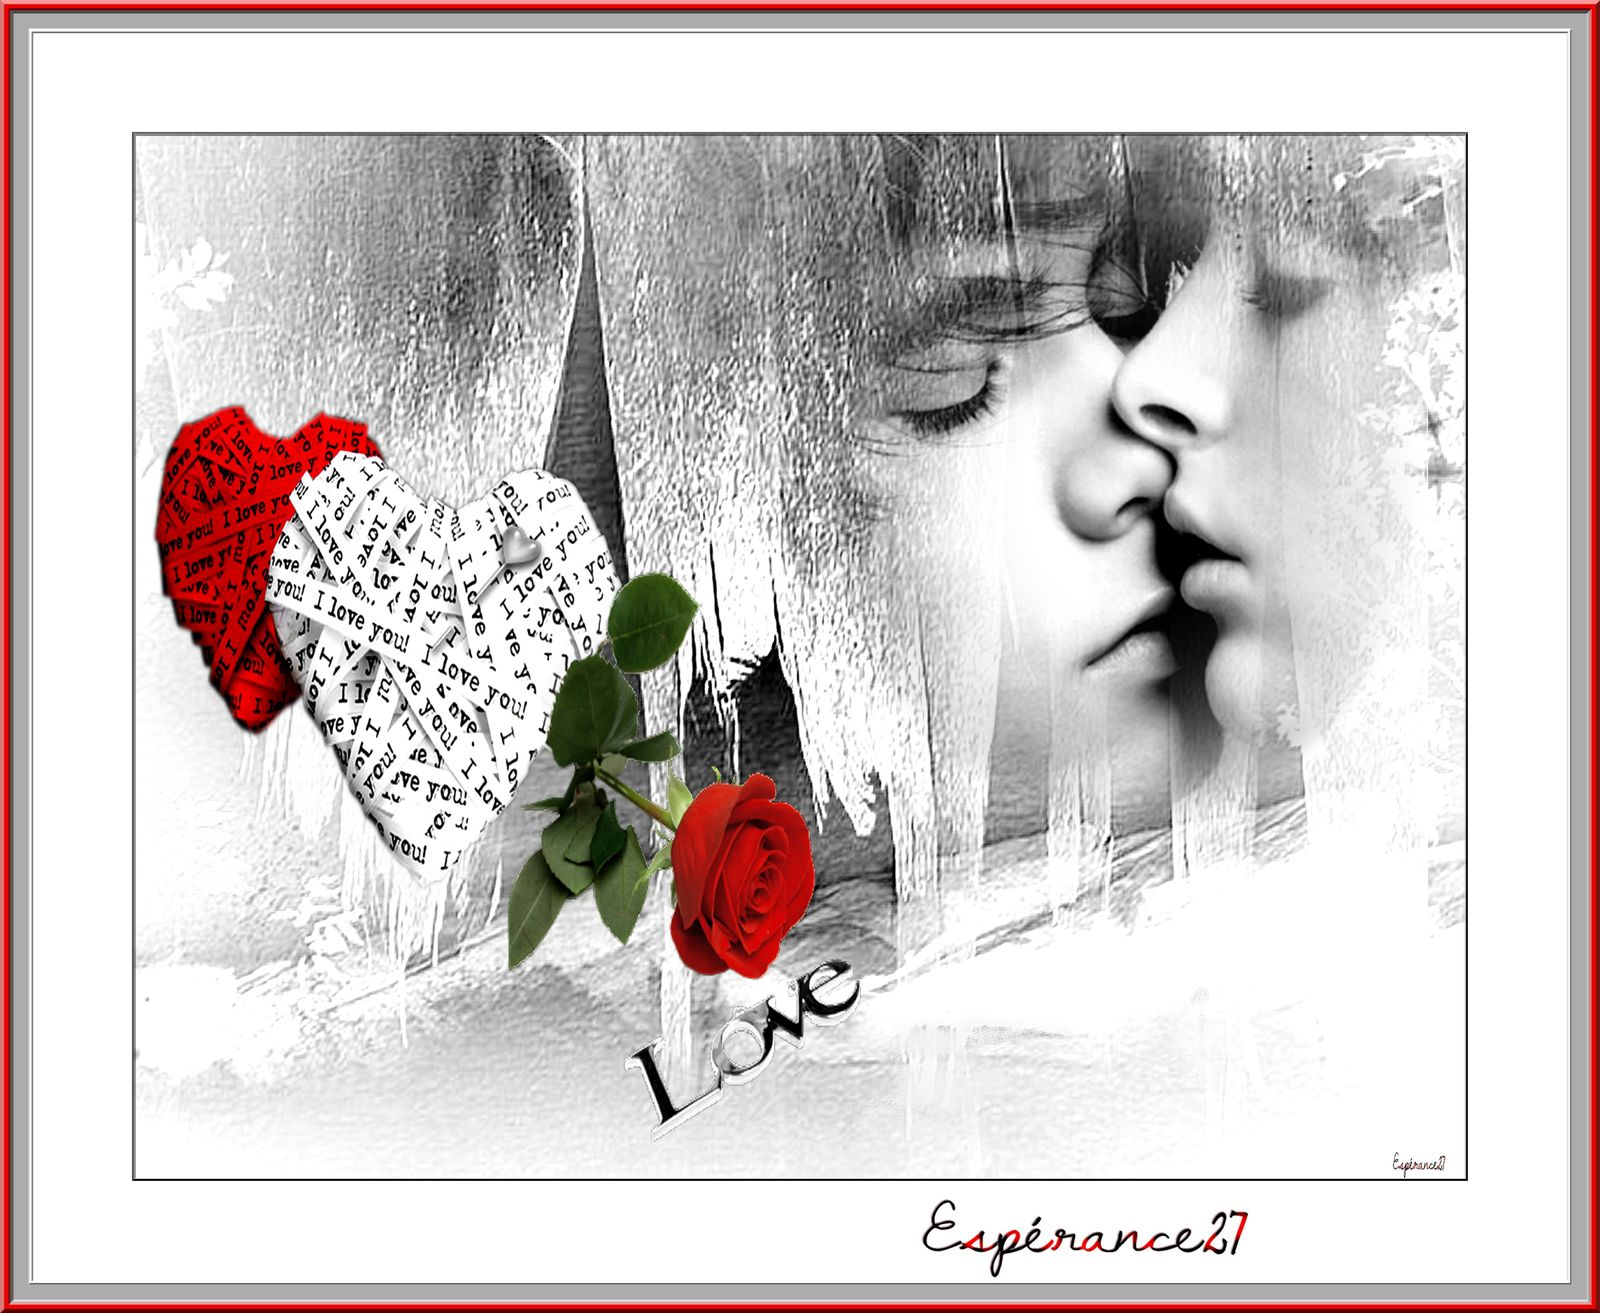 http://idata.over-blog.com/3/91/86/55/TENDRESSE/COULEUR-AFRICAINE/AMOUR/AMOUR-2/1818.jpg